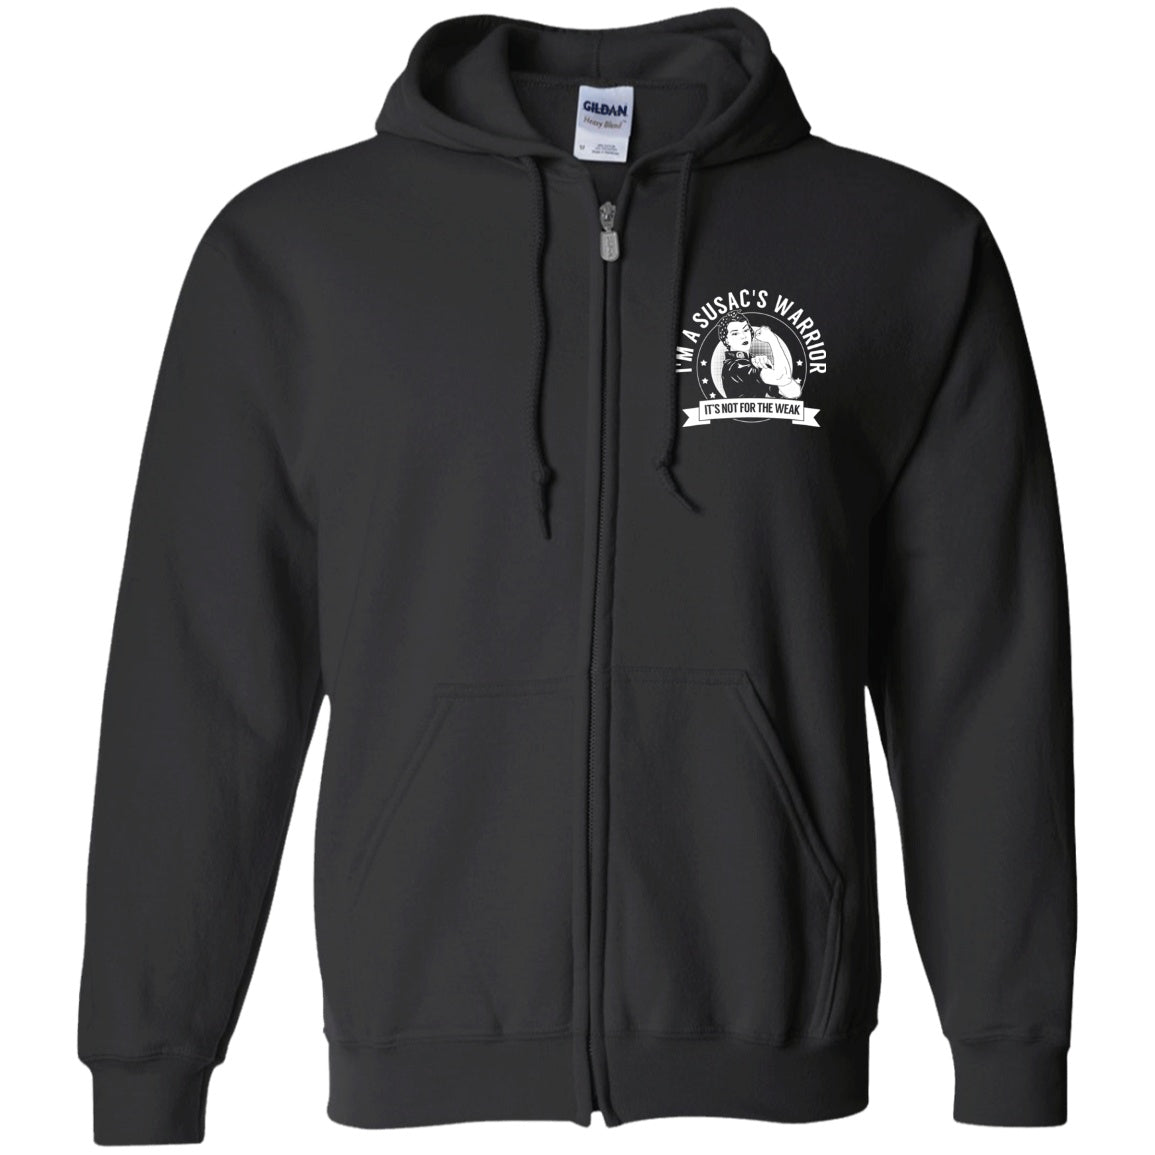 Susac's Warrior NFTW Zip Up Hooded Sweatshirt - The Unchargeables